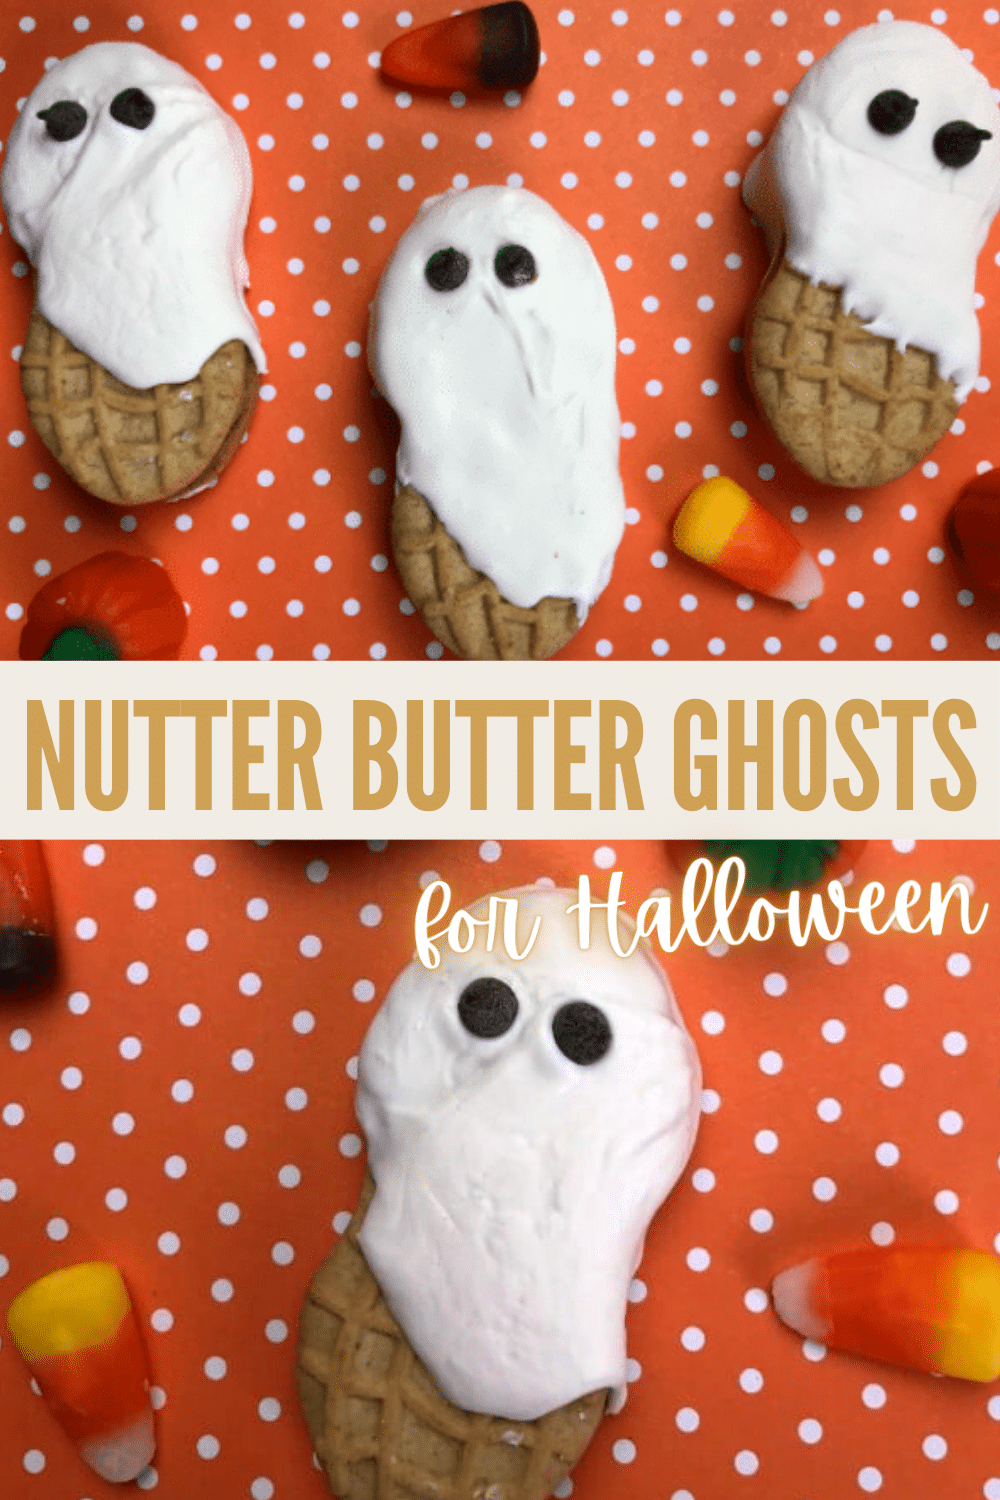 I can't get over how cute these Nutter Butter Ghosts are and how easy they are to make! These are going to be a blast to make with the kids. #halloween #funfoodforkids #easytreats via @wondermomwannab